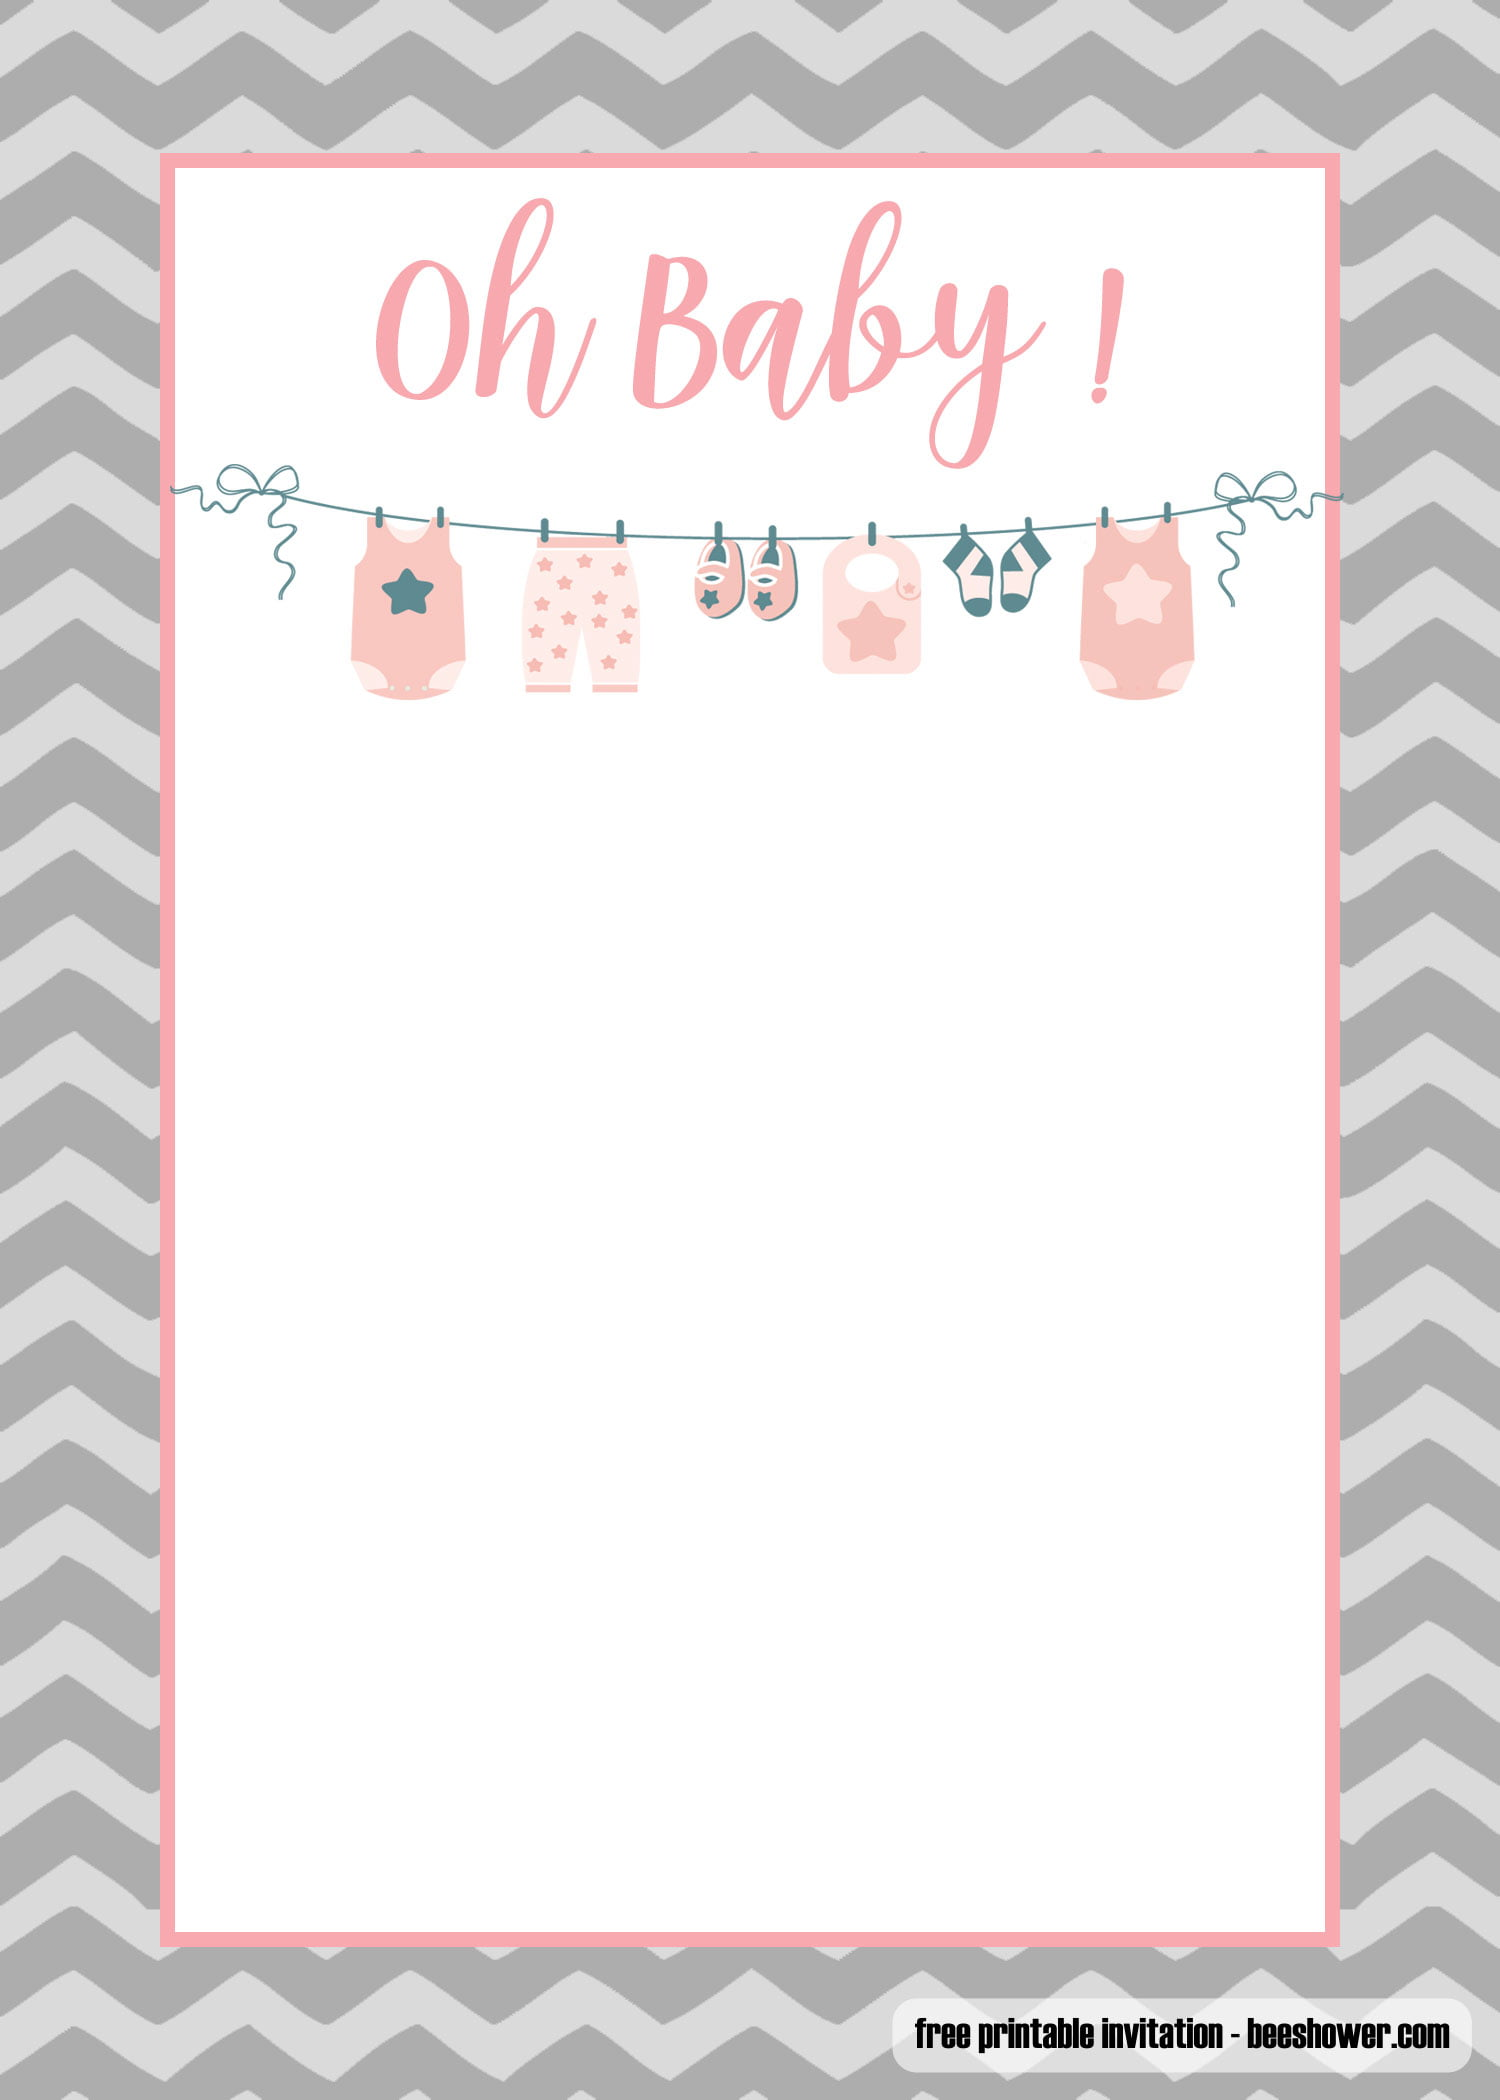 Unforgettable image with free printable baby shower invitations templates